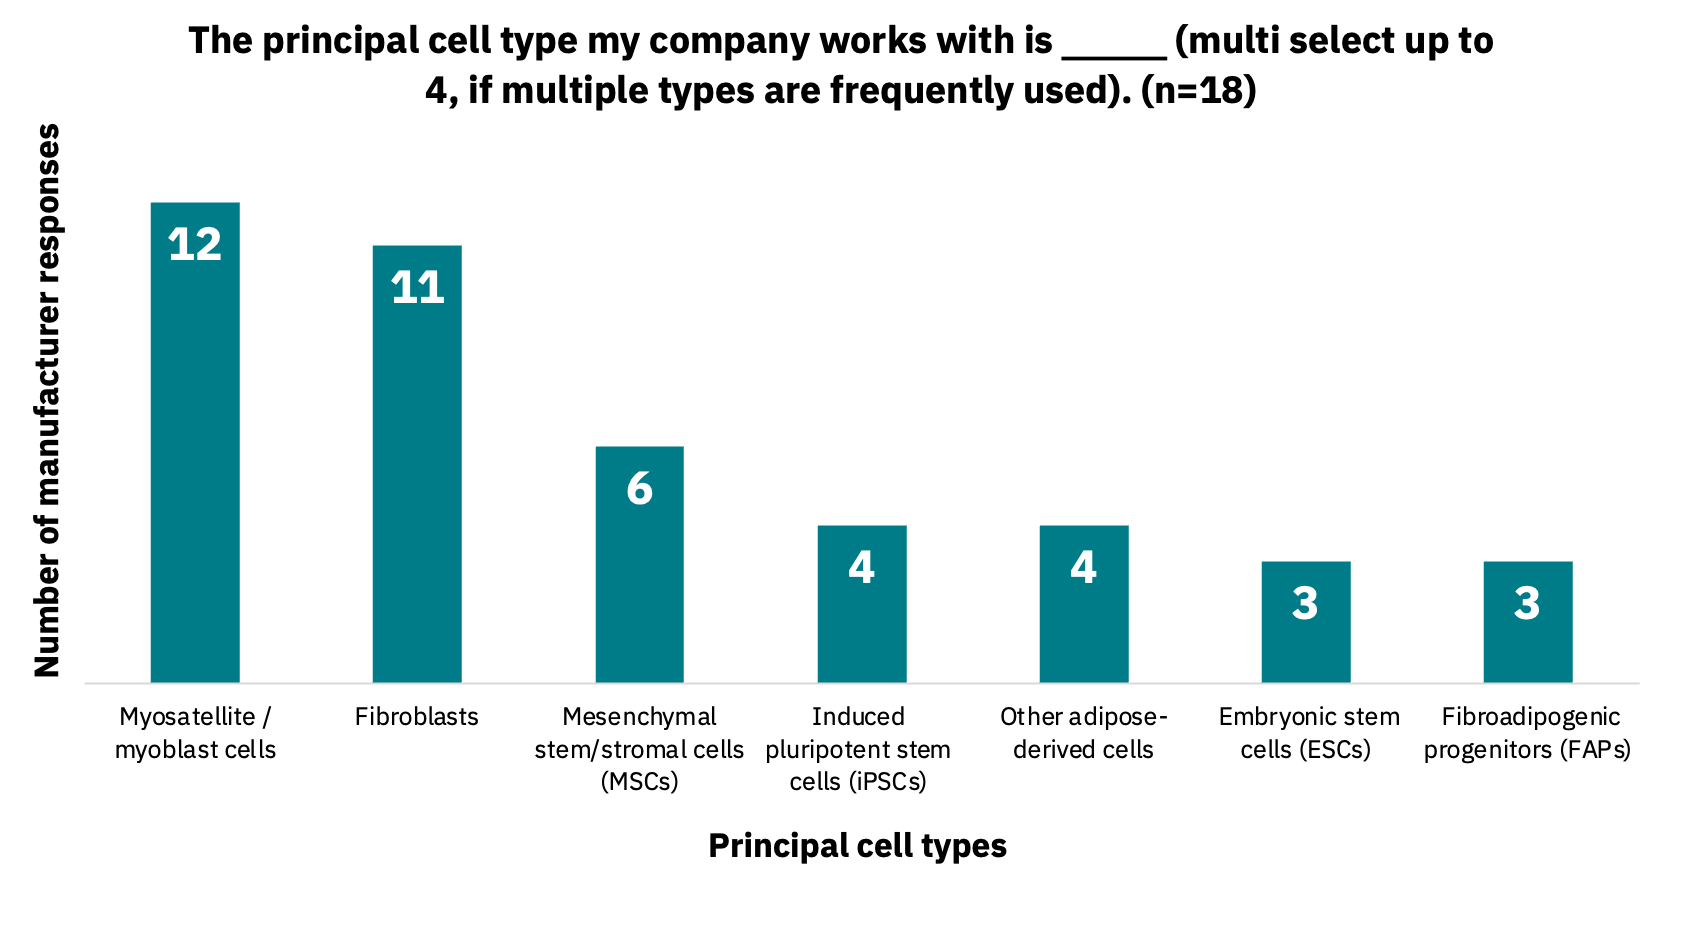 Bar graph showing the principal cell types that companies work with.